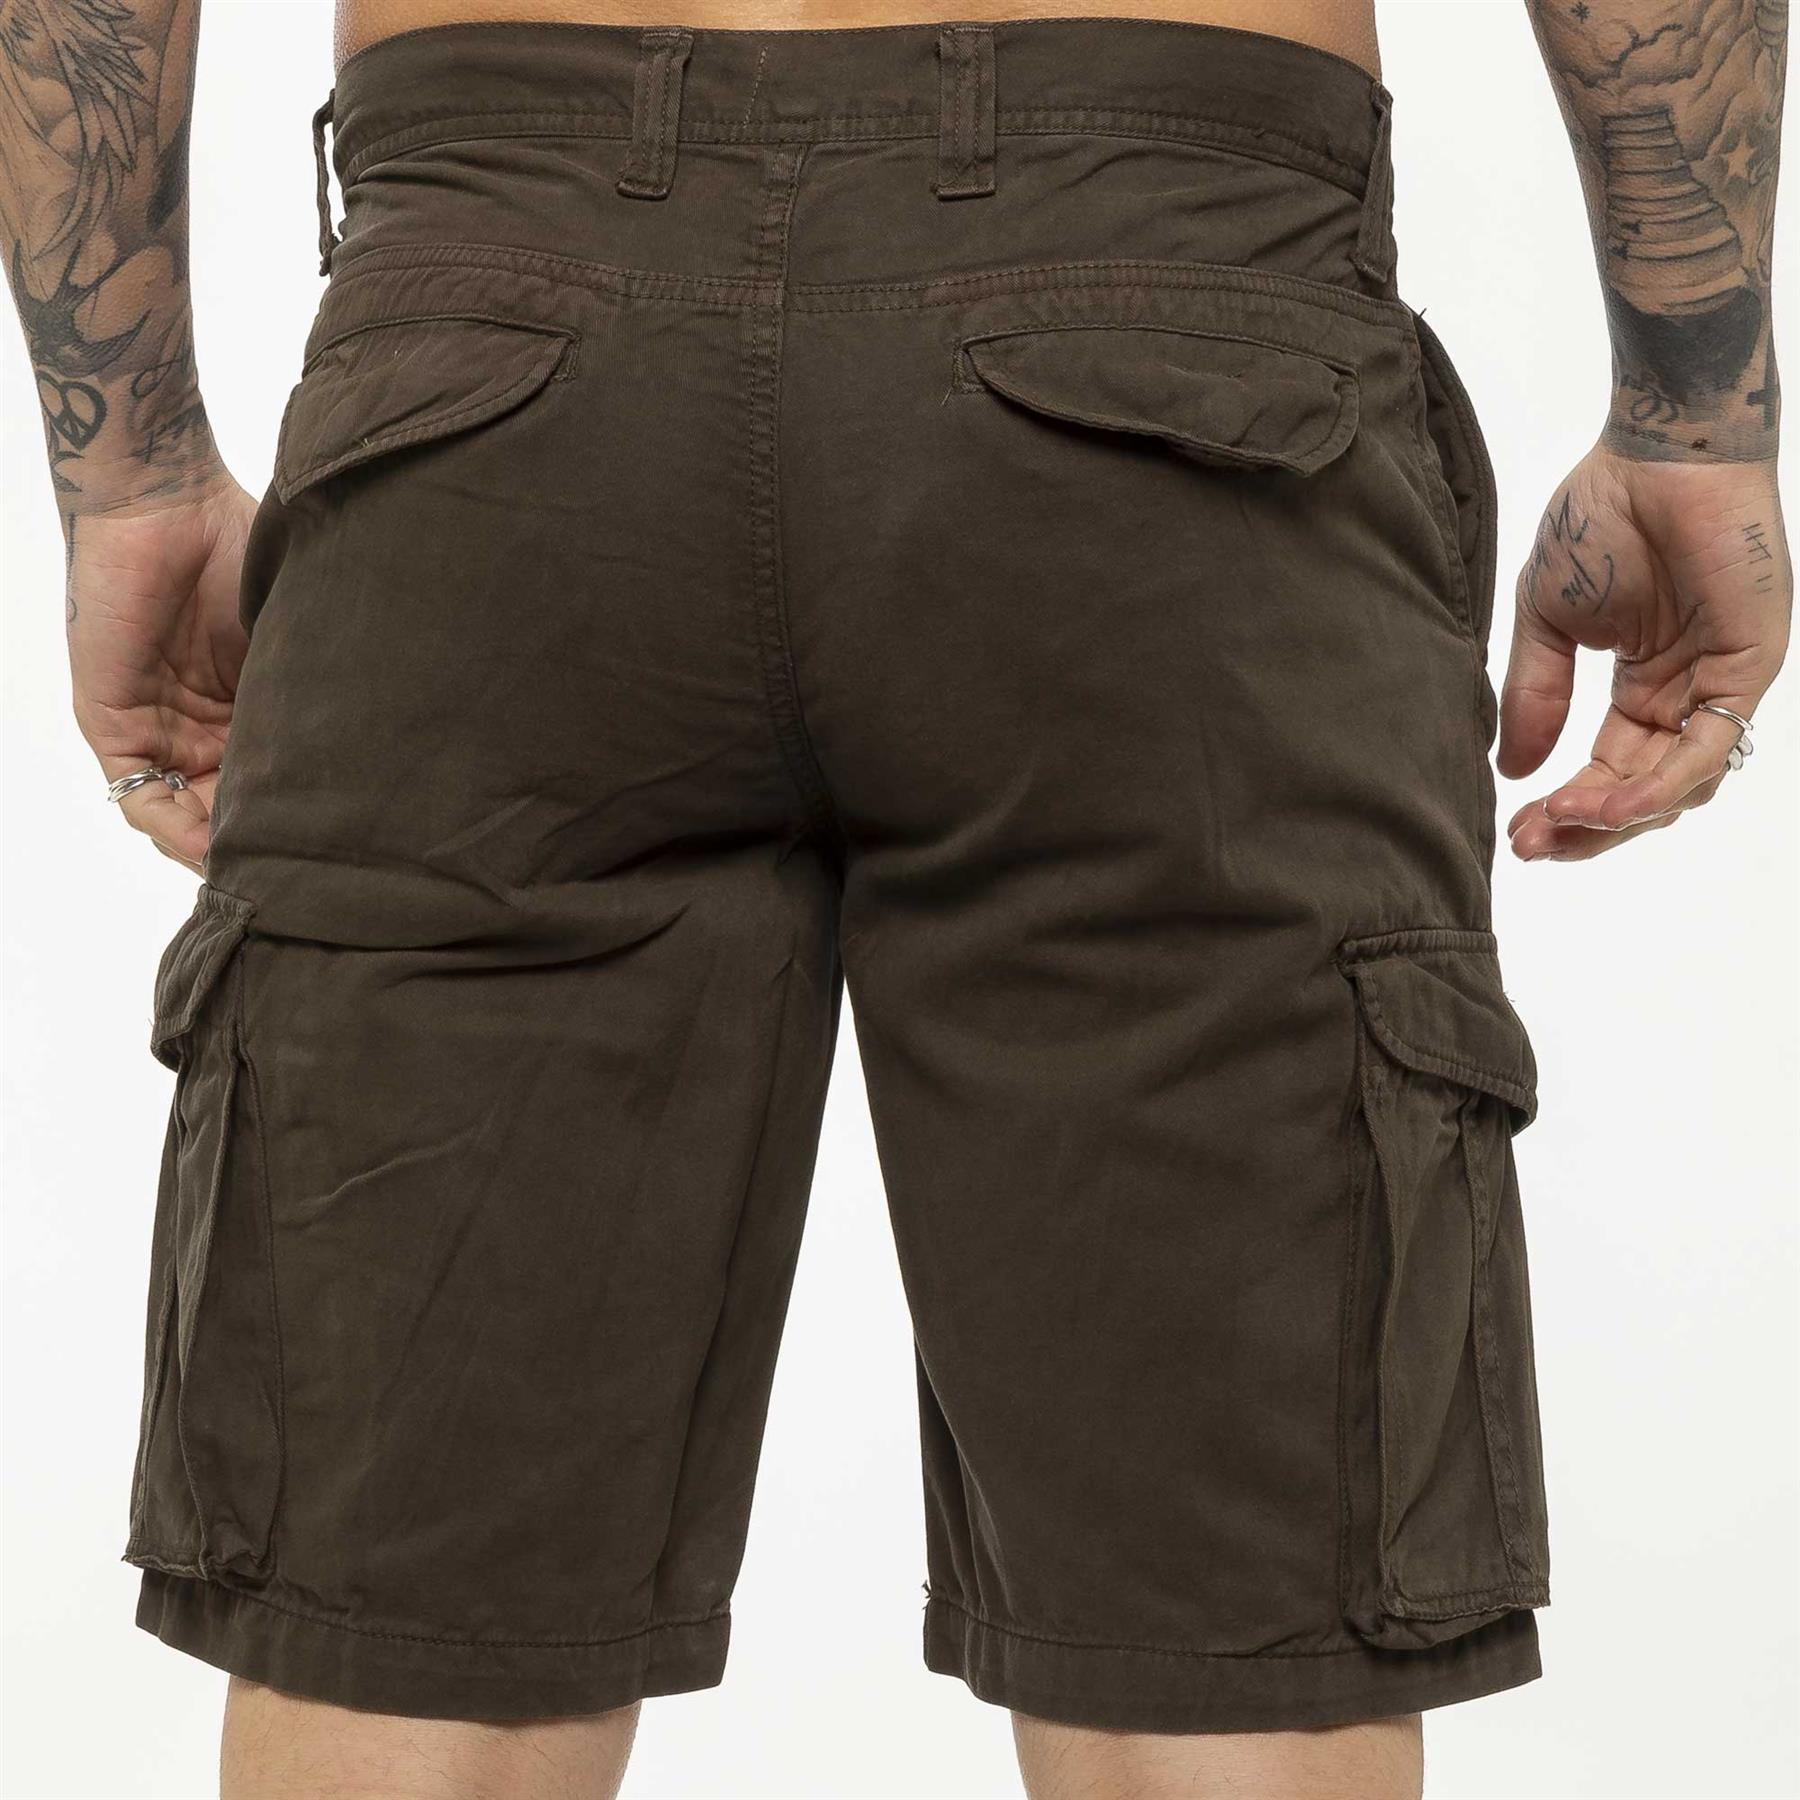 thumbnail 49 - Kruze Jeans Mens Army Combat Shorts Camouflage Cargo Casual Camo Work Half Pants